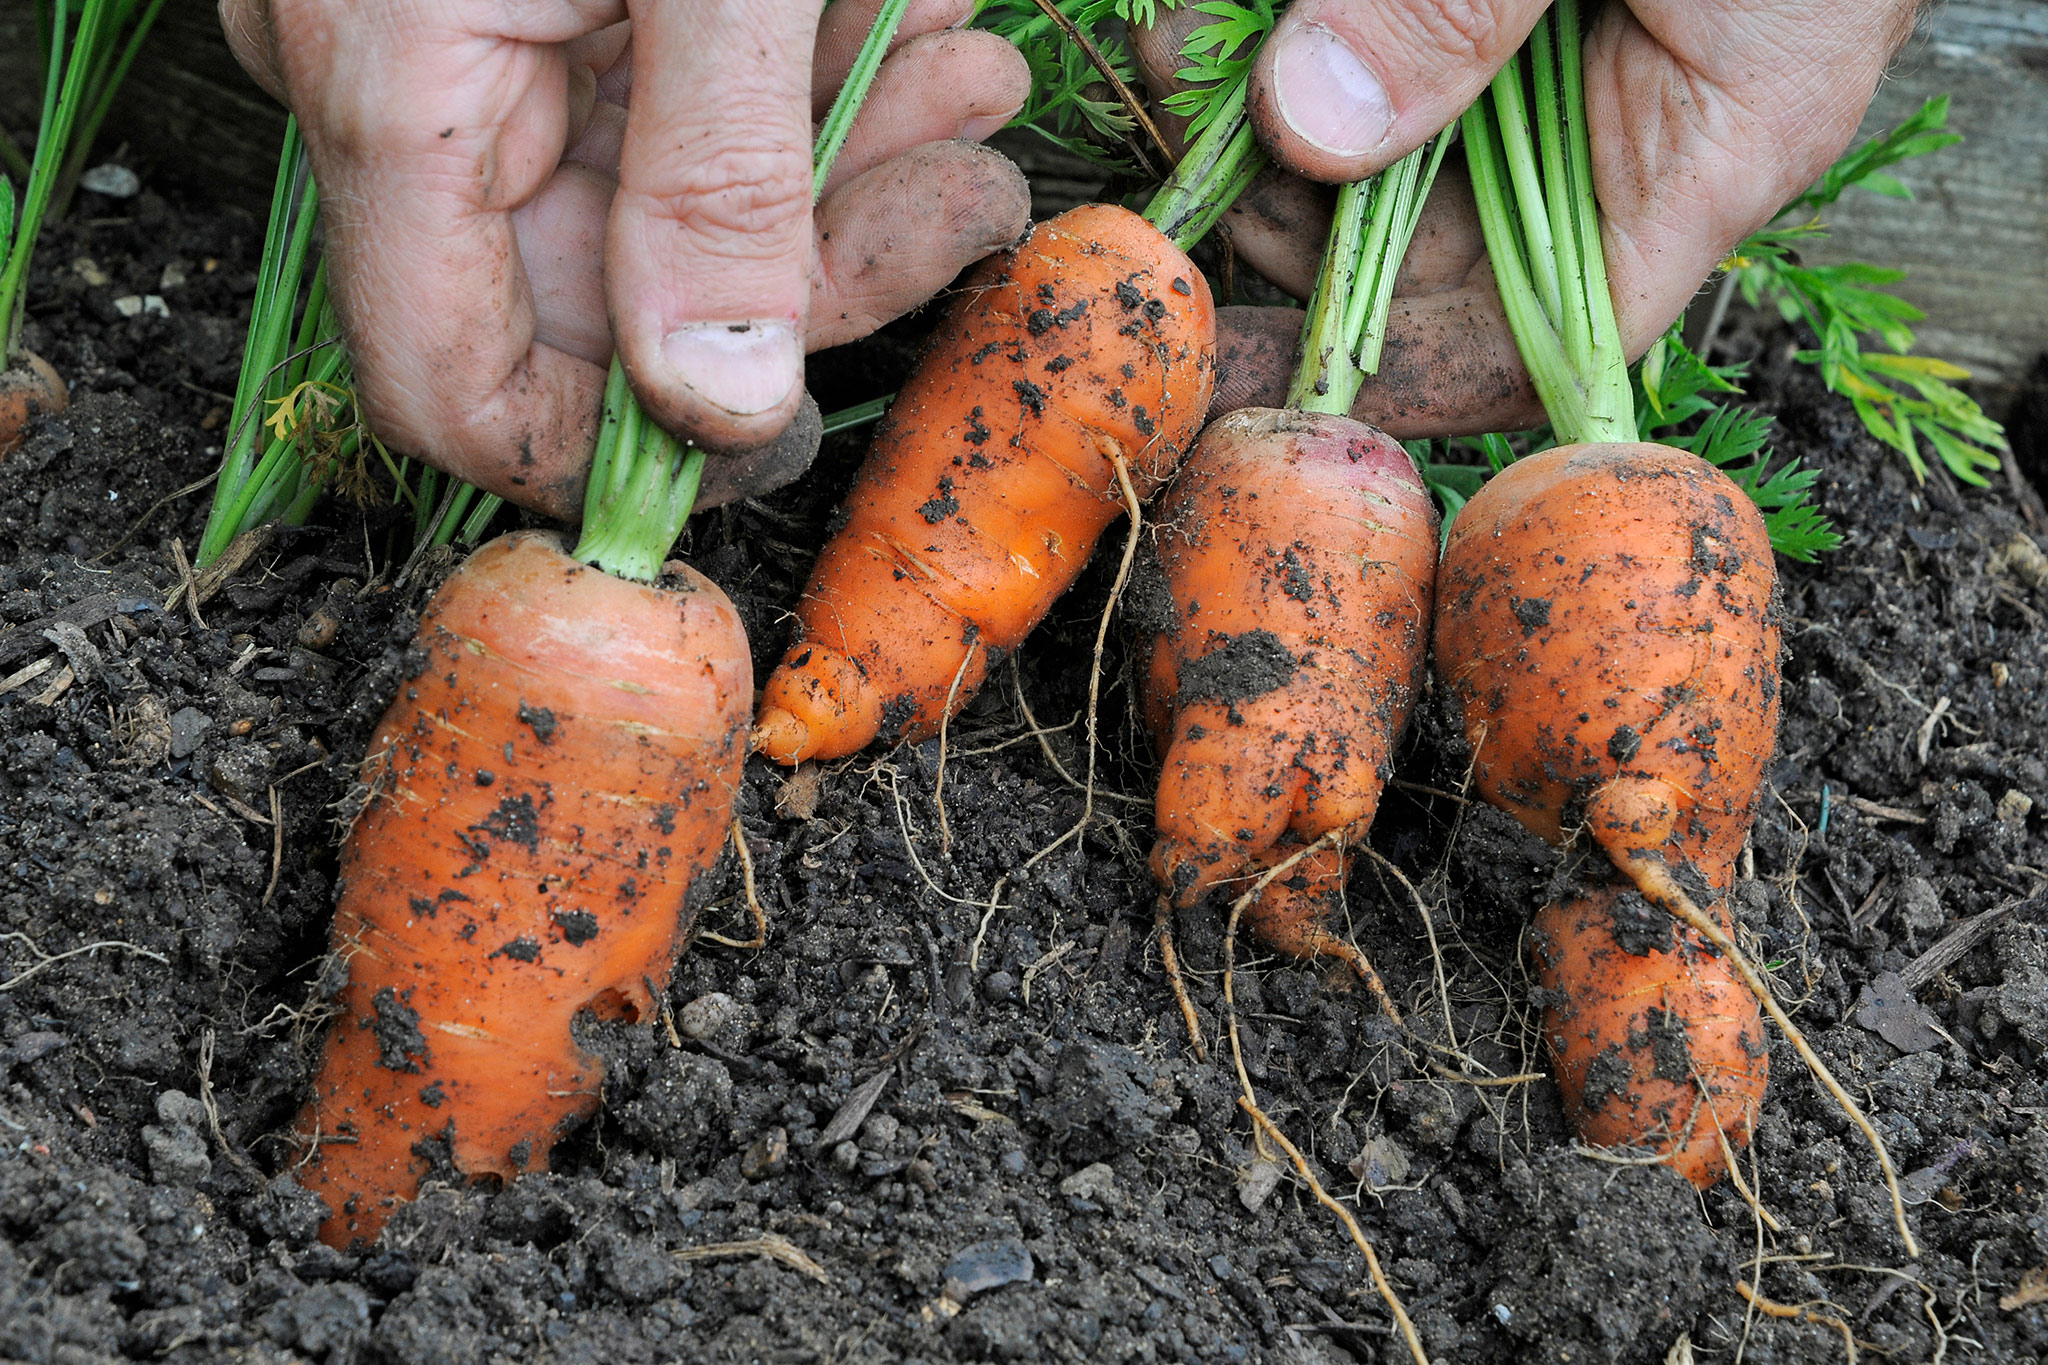 pulling-up-carrots-2